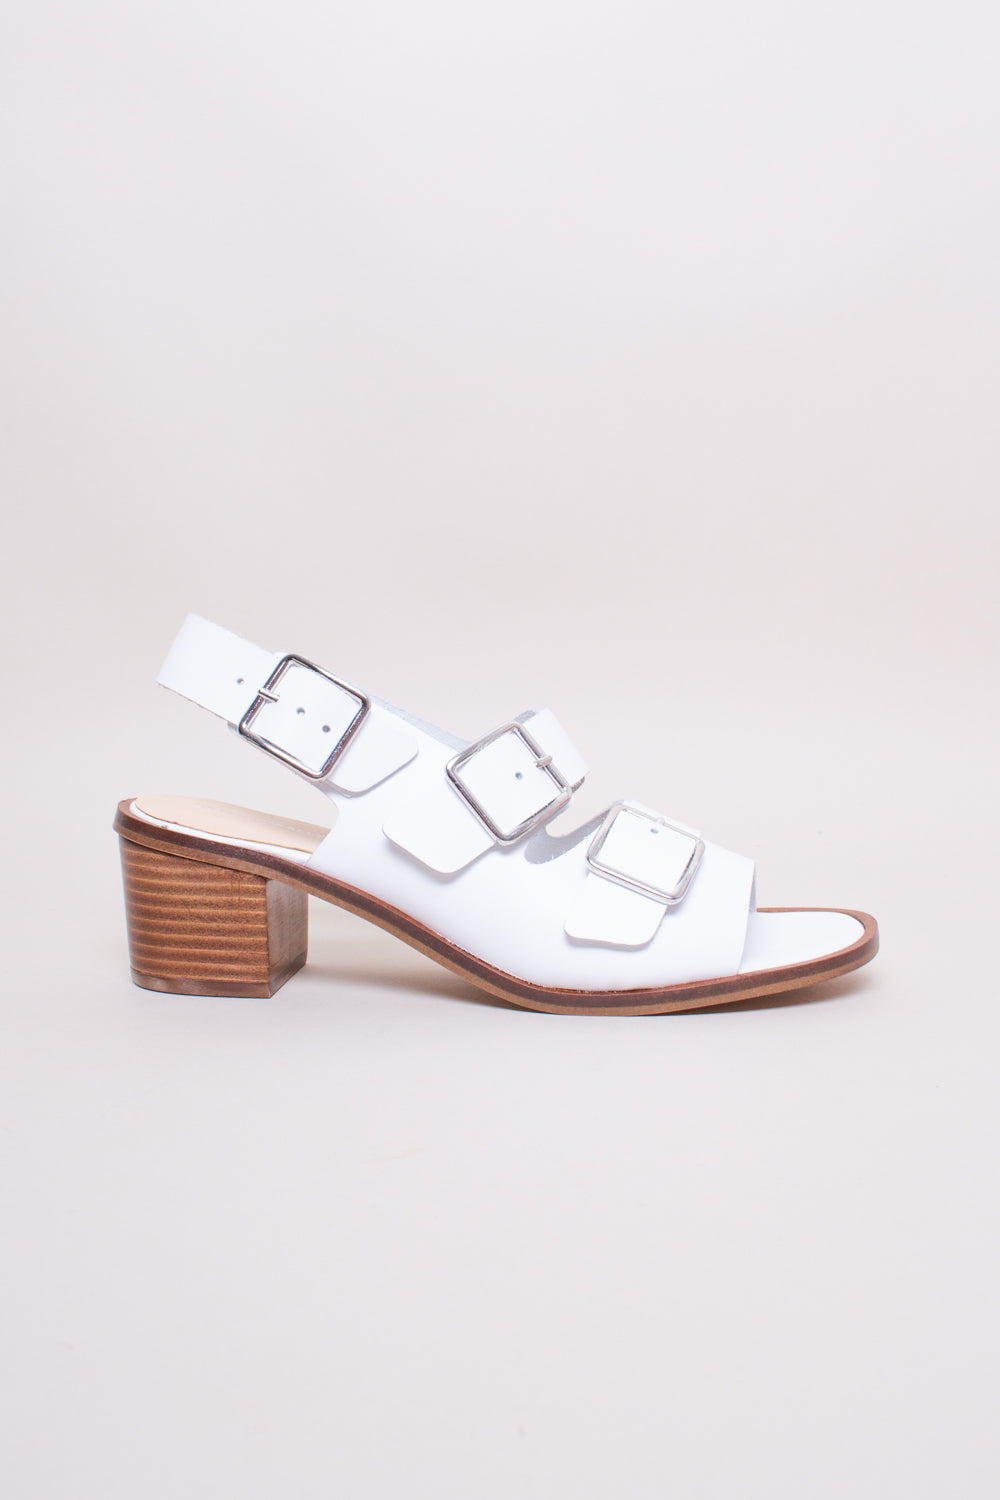 Jill Sandal in White